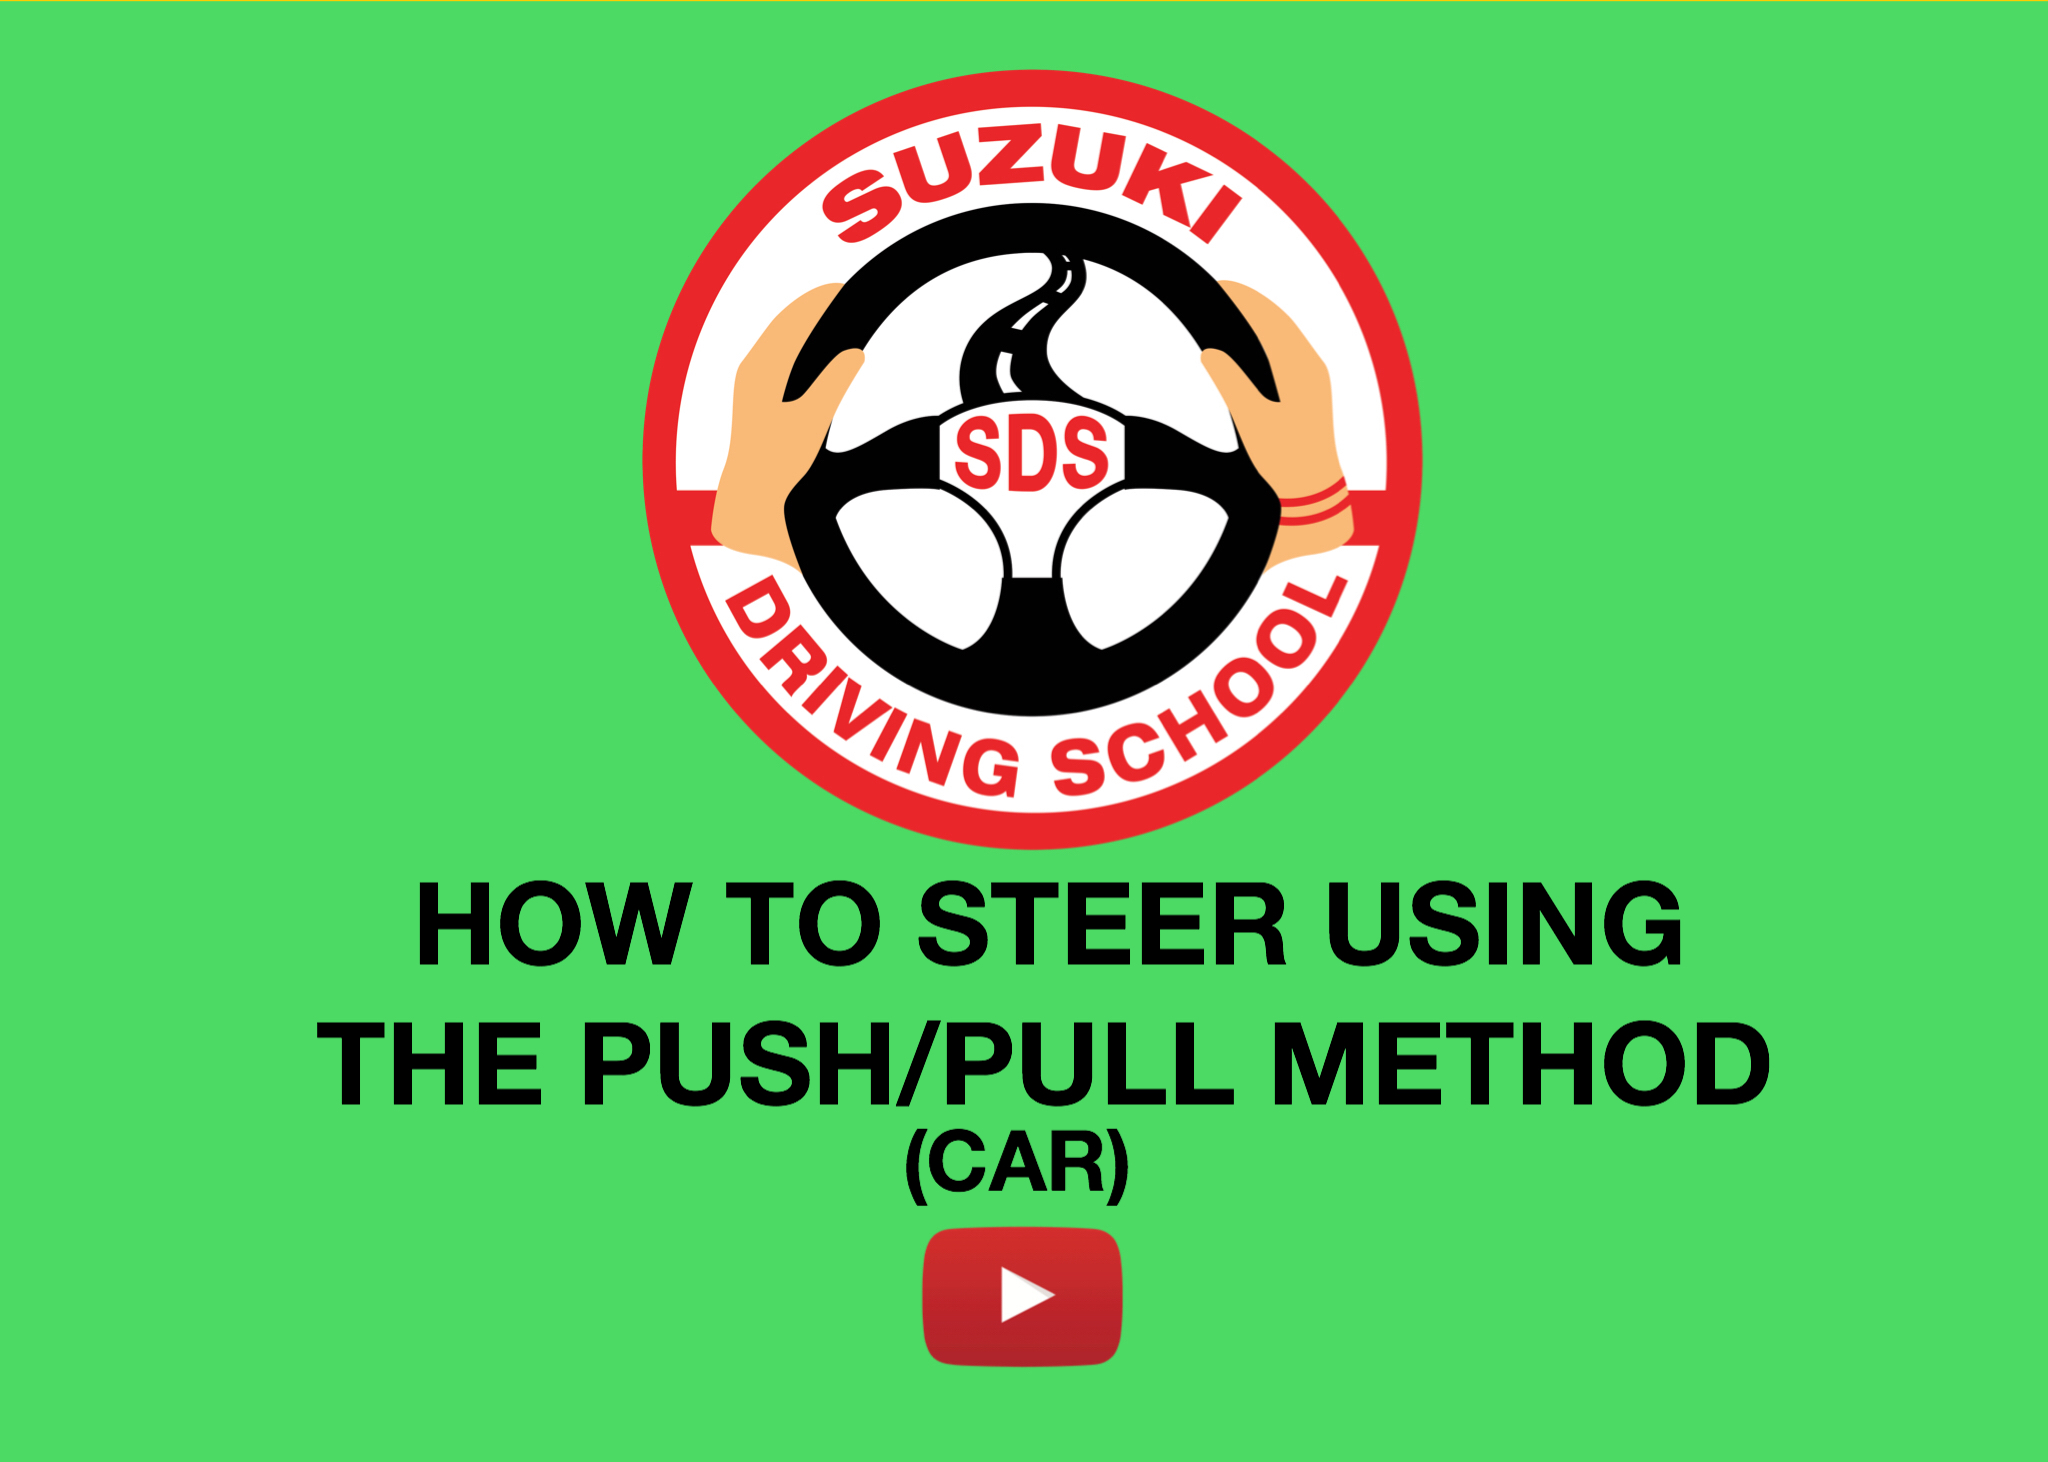 HOW TO STEER PUSH/PULL METHOD